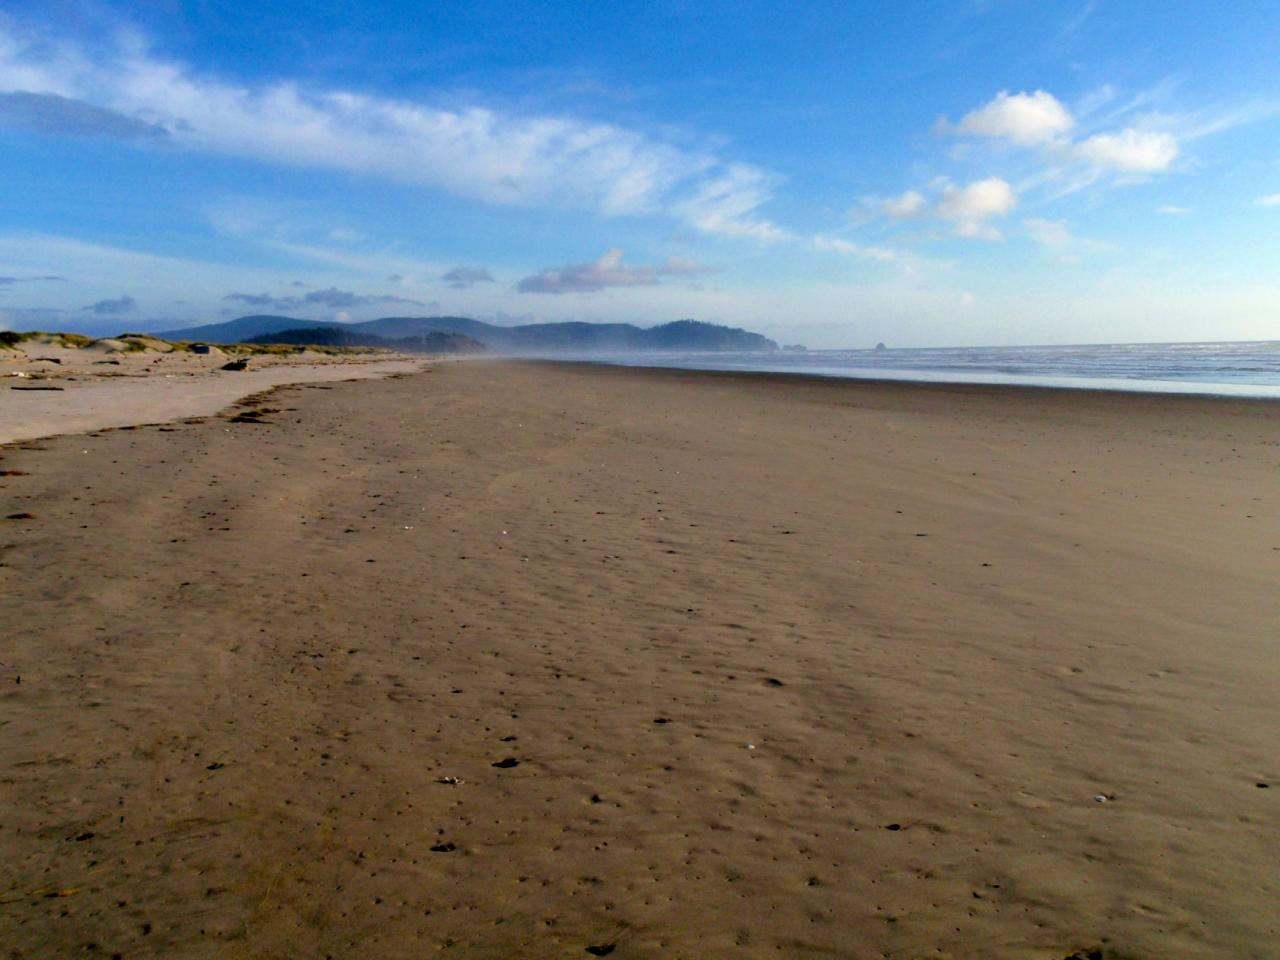 Cape Meares as seen from the south jetty area of Tillamook Bay,  Mile 289.